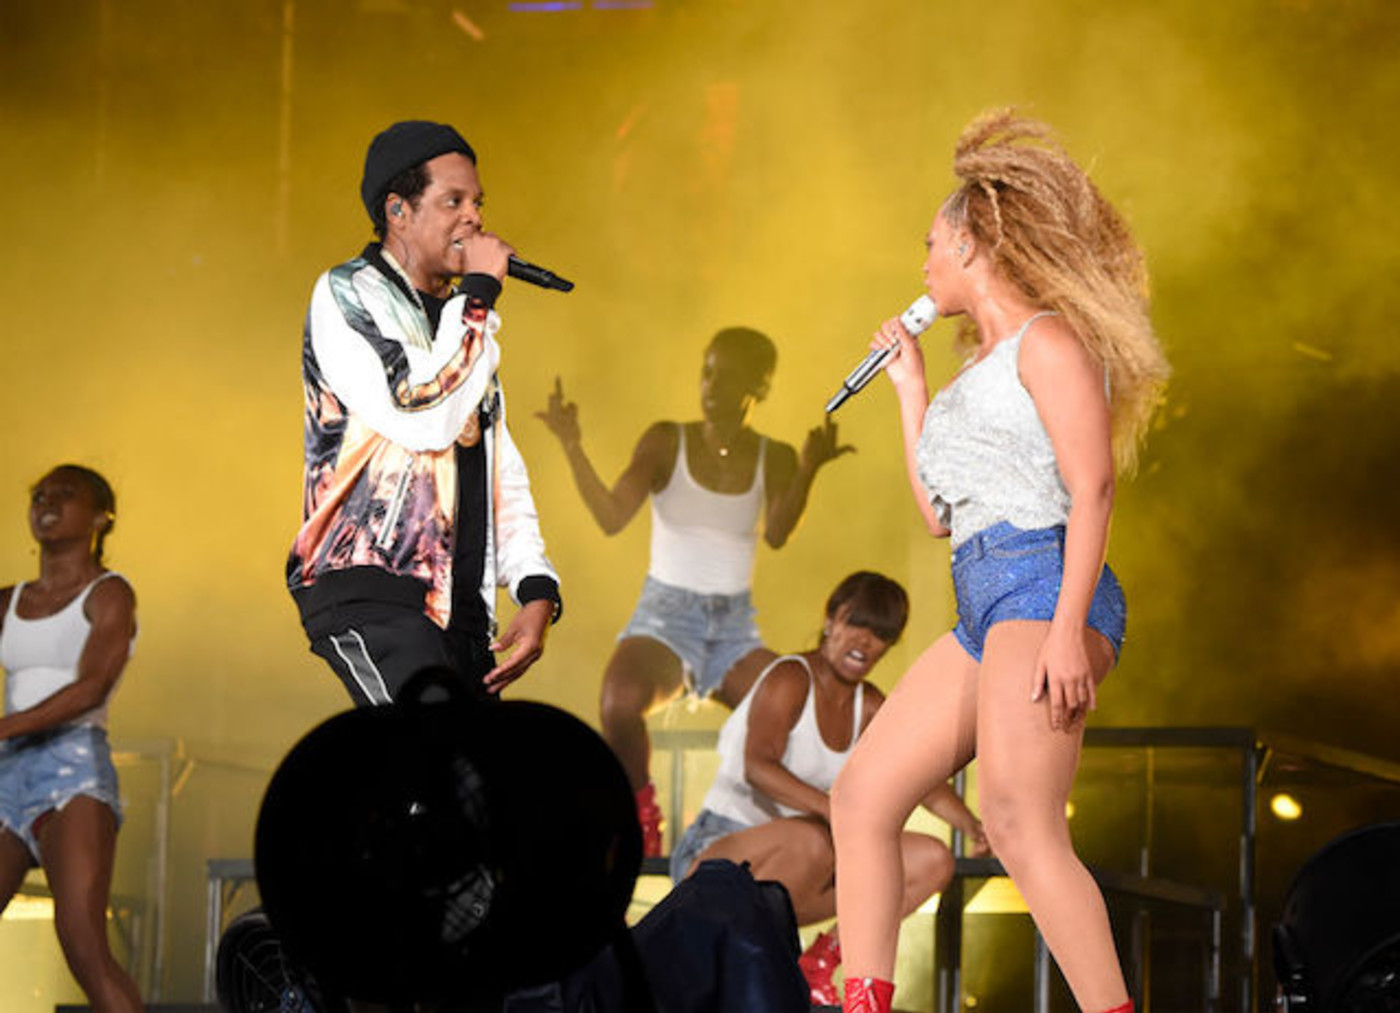 This is a picture of Beyonce and Jay Z.